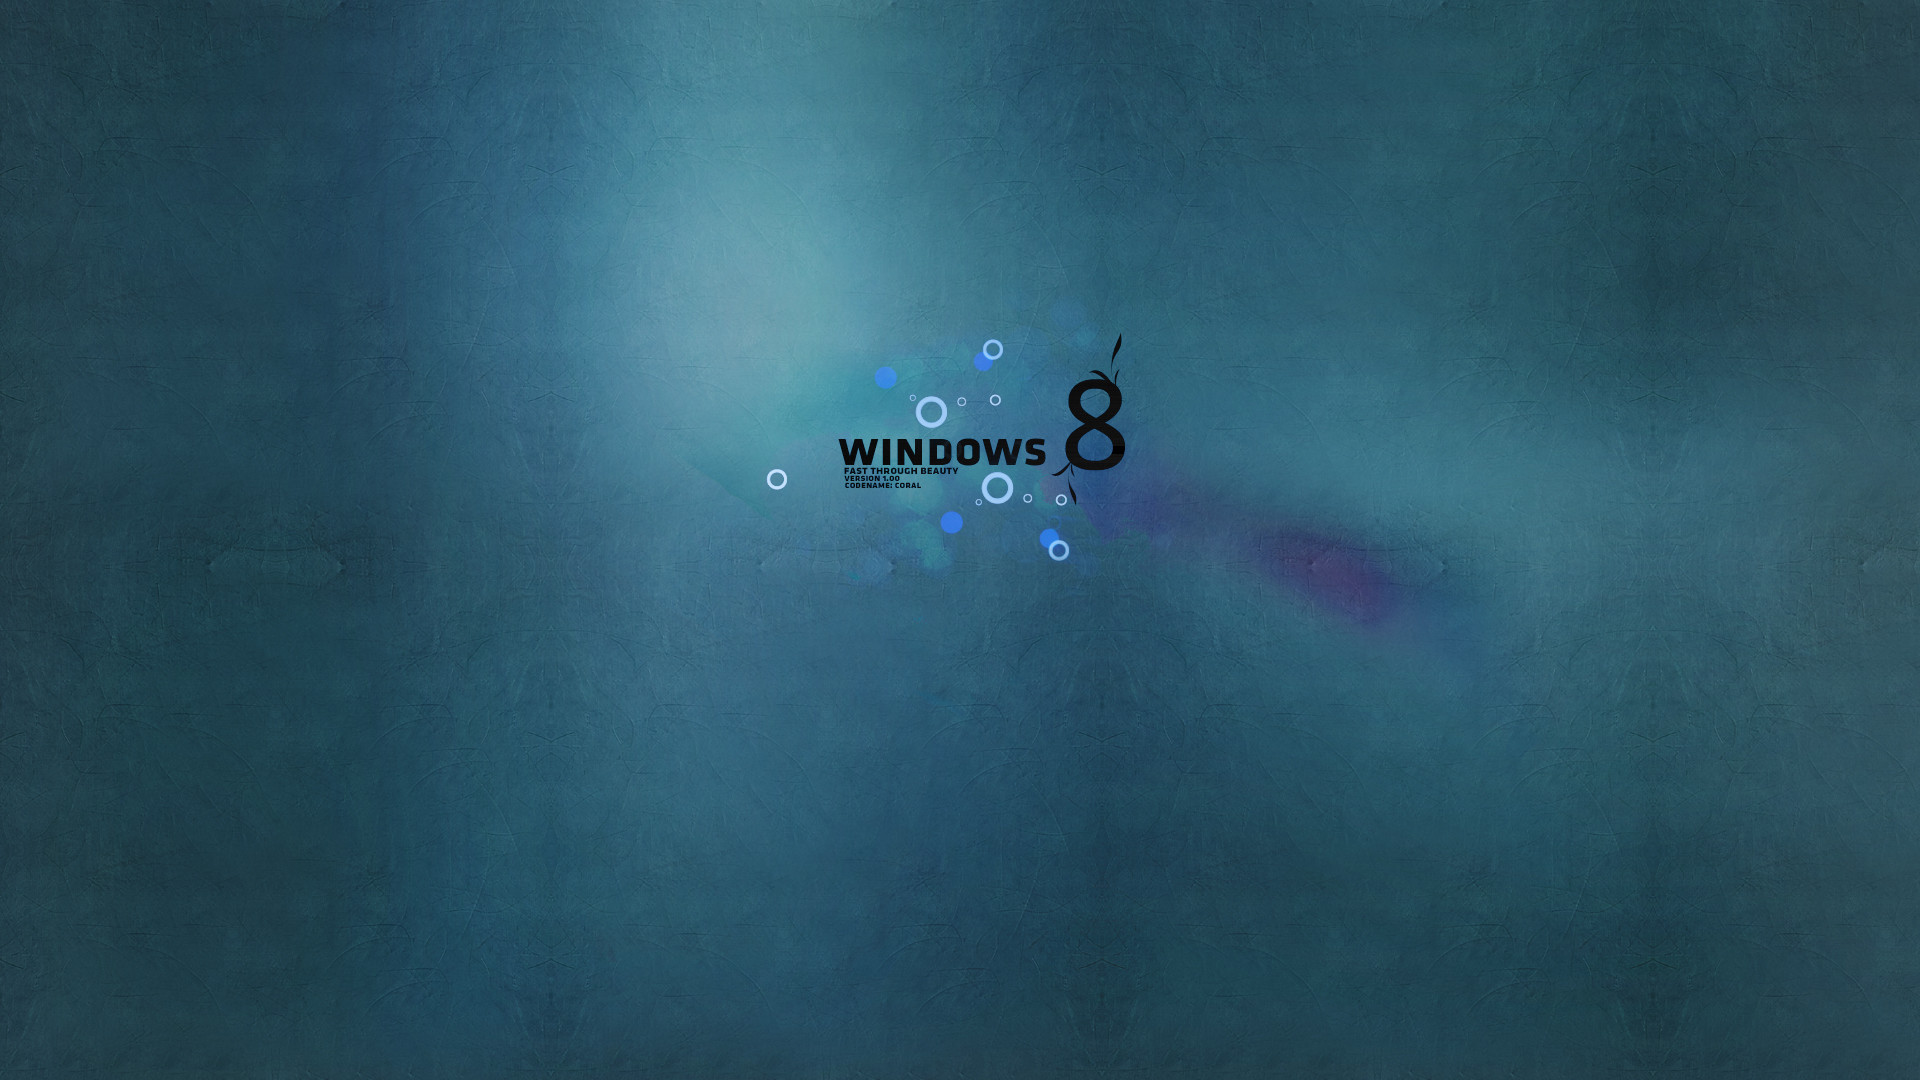 windows 8 wallpaper 1920x1080 (78+ pictures)